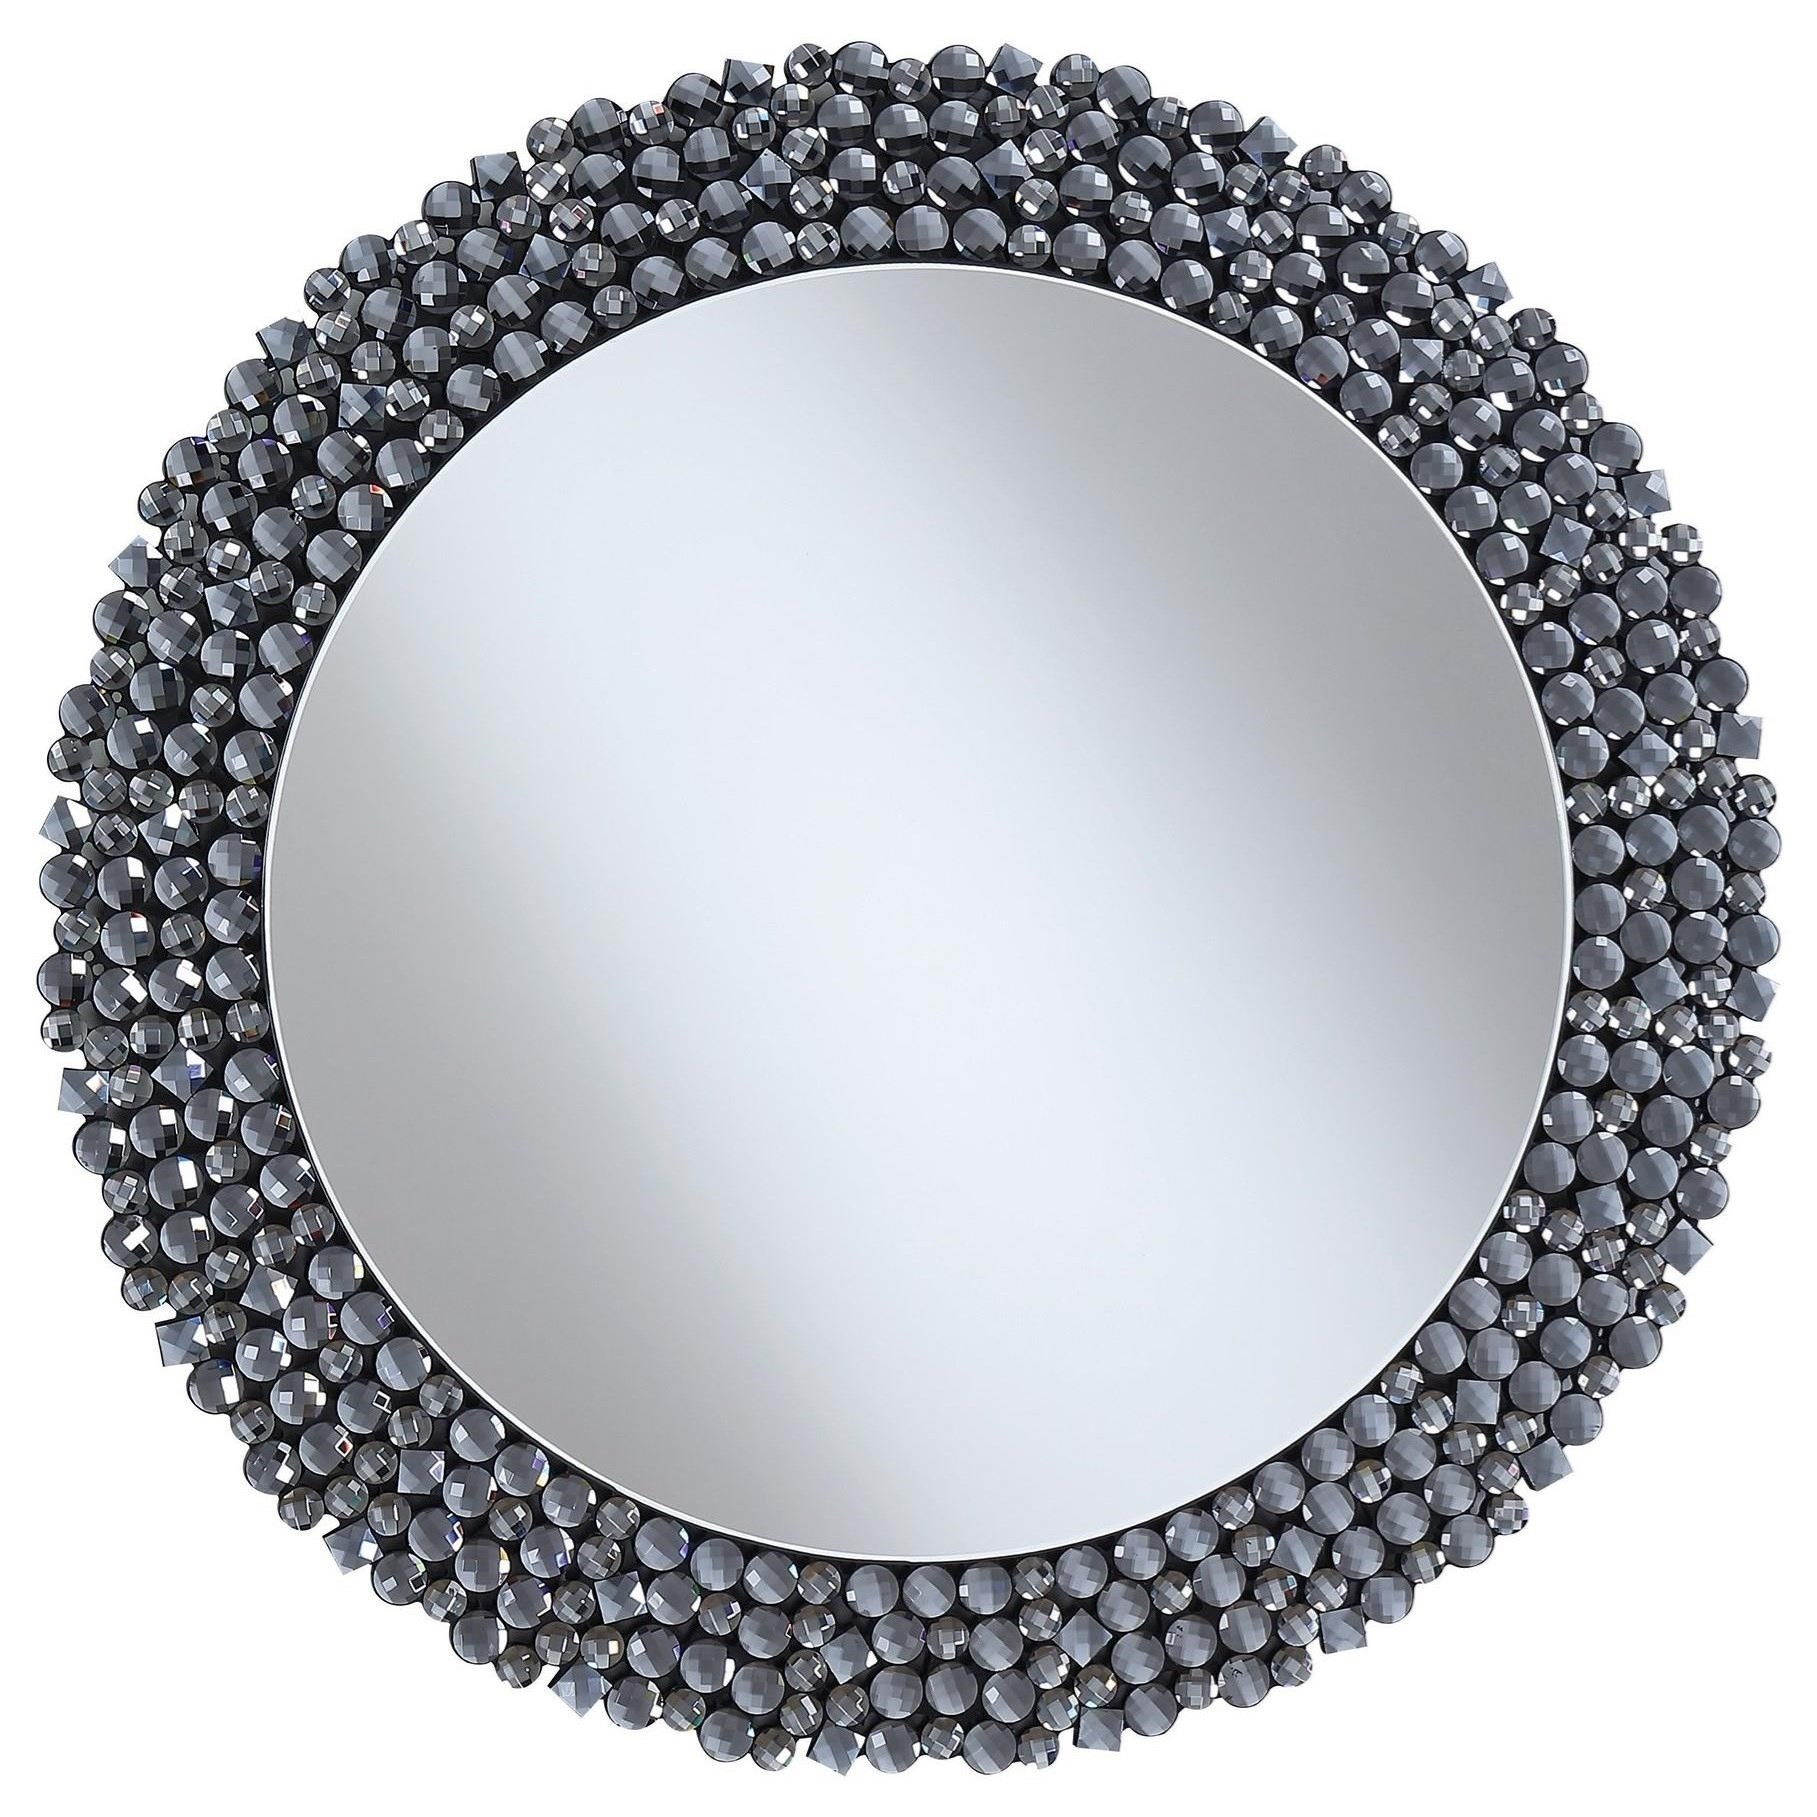 Accent Mirrors Round Contemporary Wall Mirror By Coaster At Rooms For Less